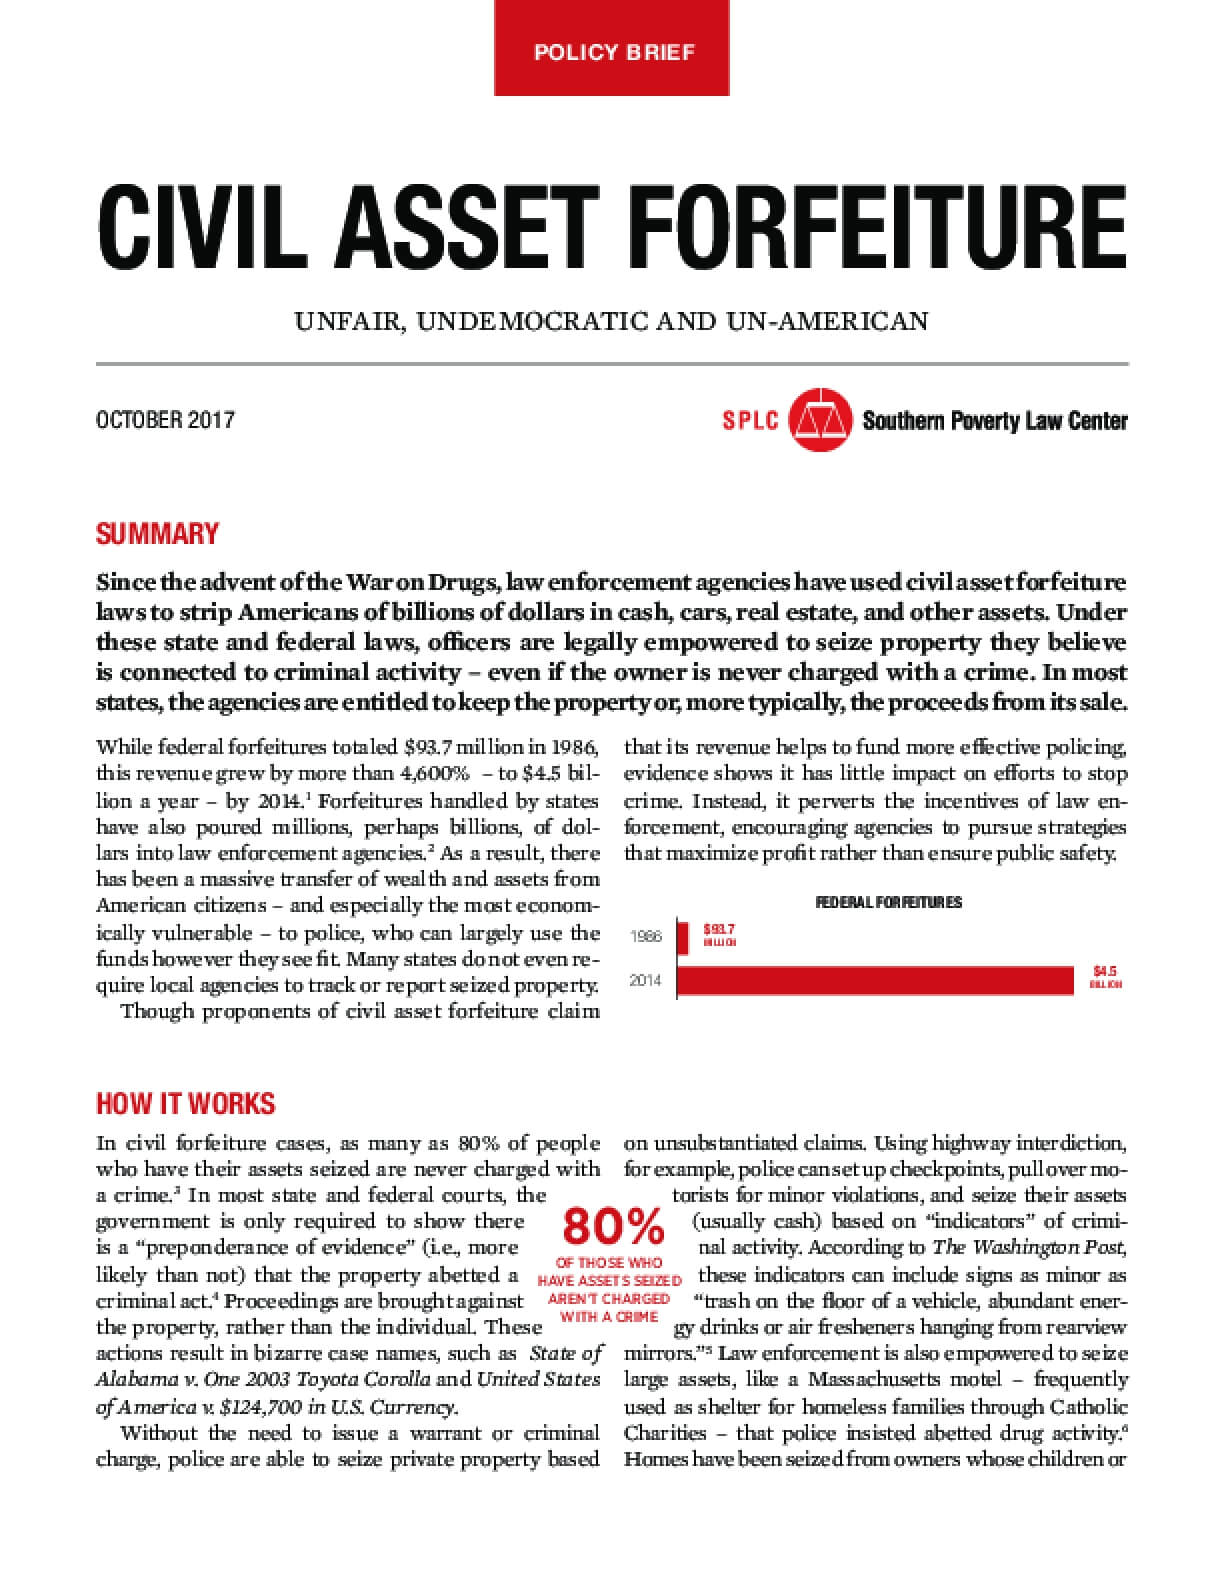 Civil asset forfeiture: Unfair, undemocratic, and un-American